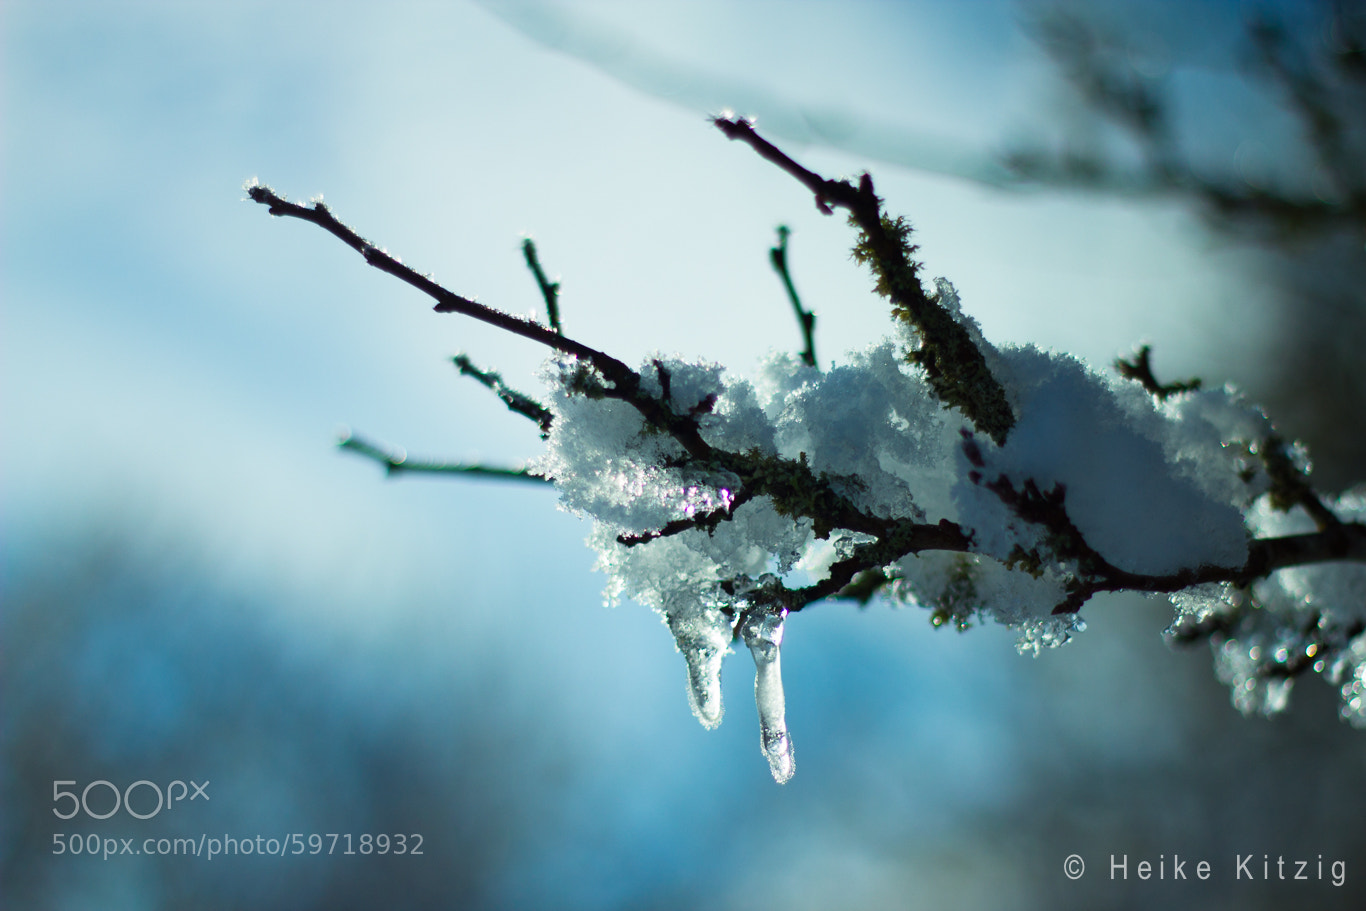 Photograph Leaf with snow  and ice by Heike Kitzig on 500px